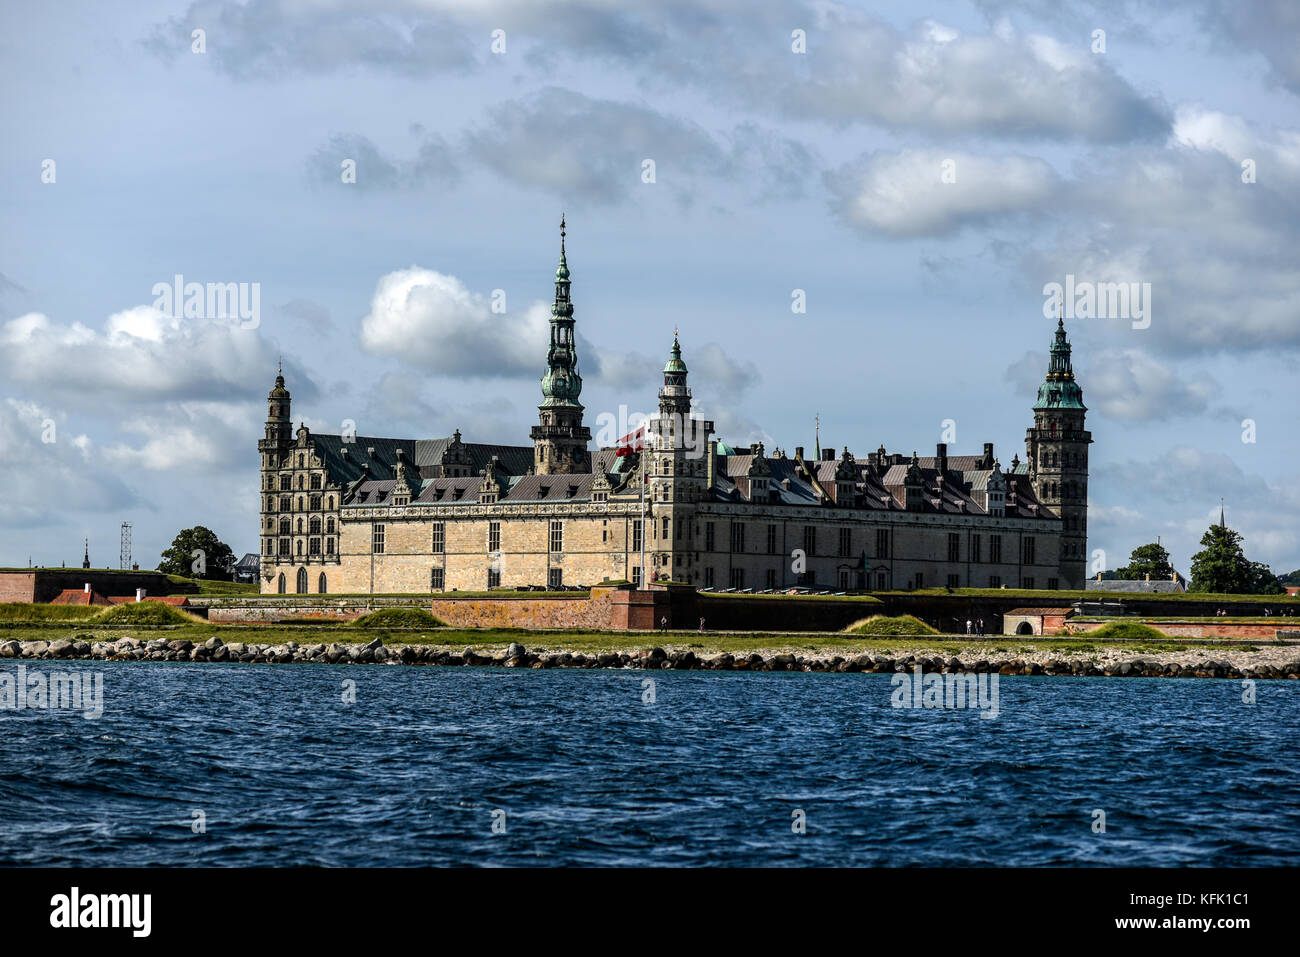 Kronborg Castle in Denmark, view from the water, sunny summer day. - Stock Image